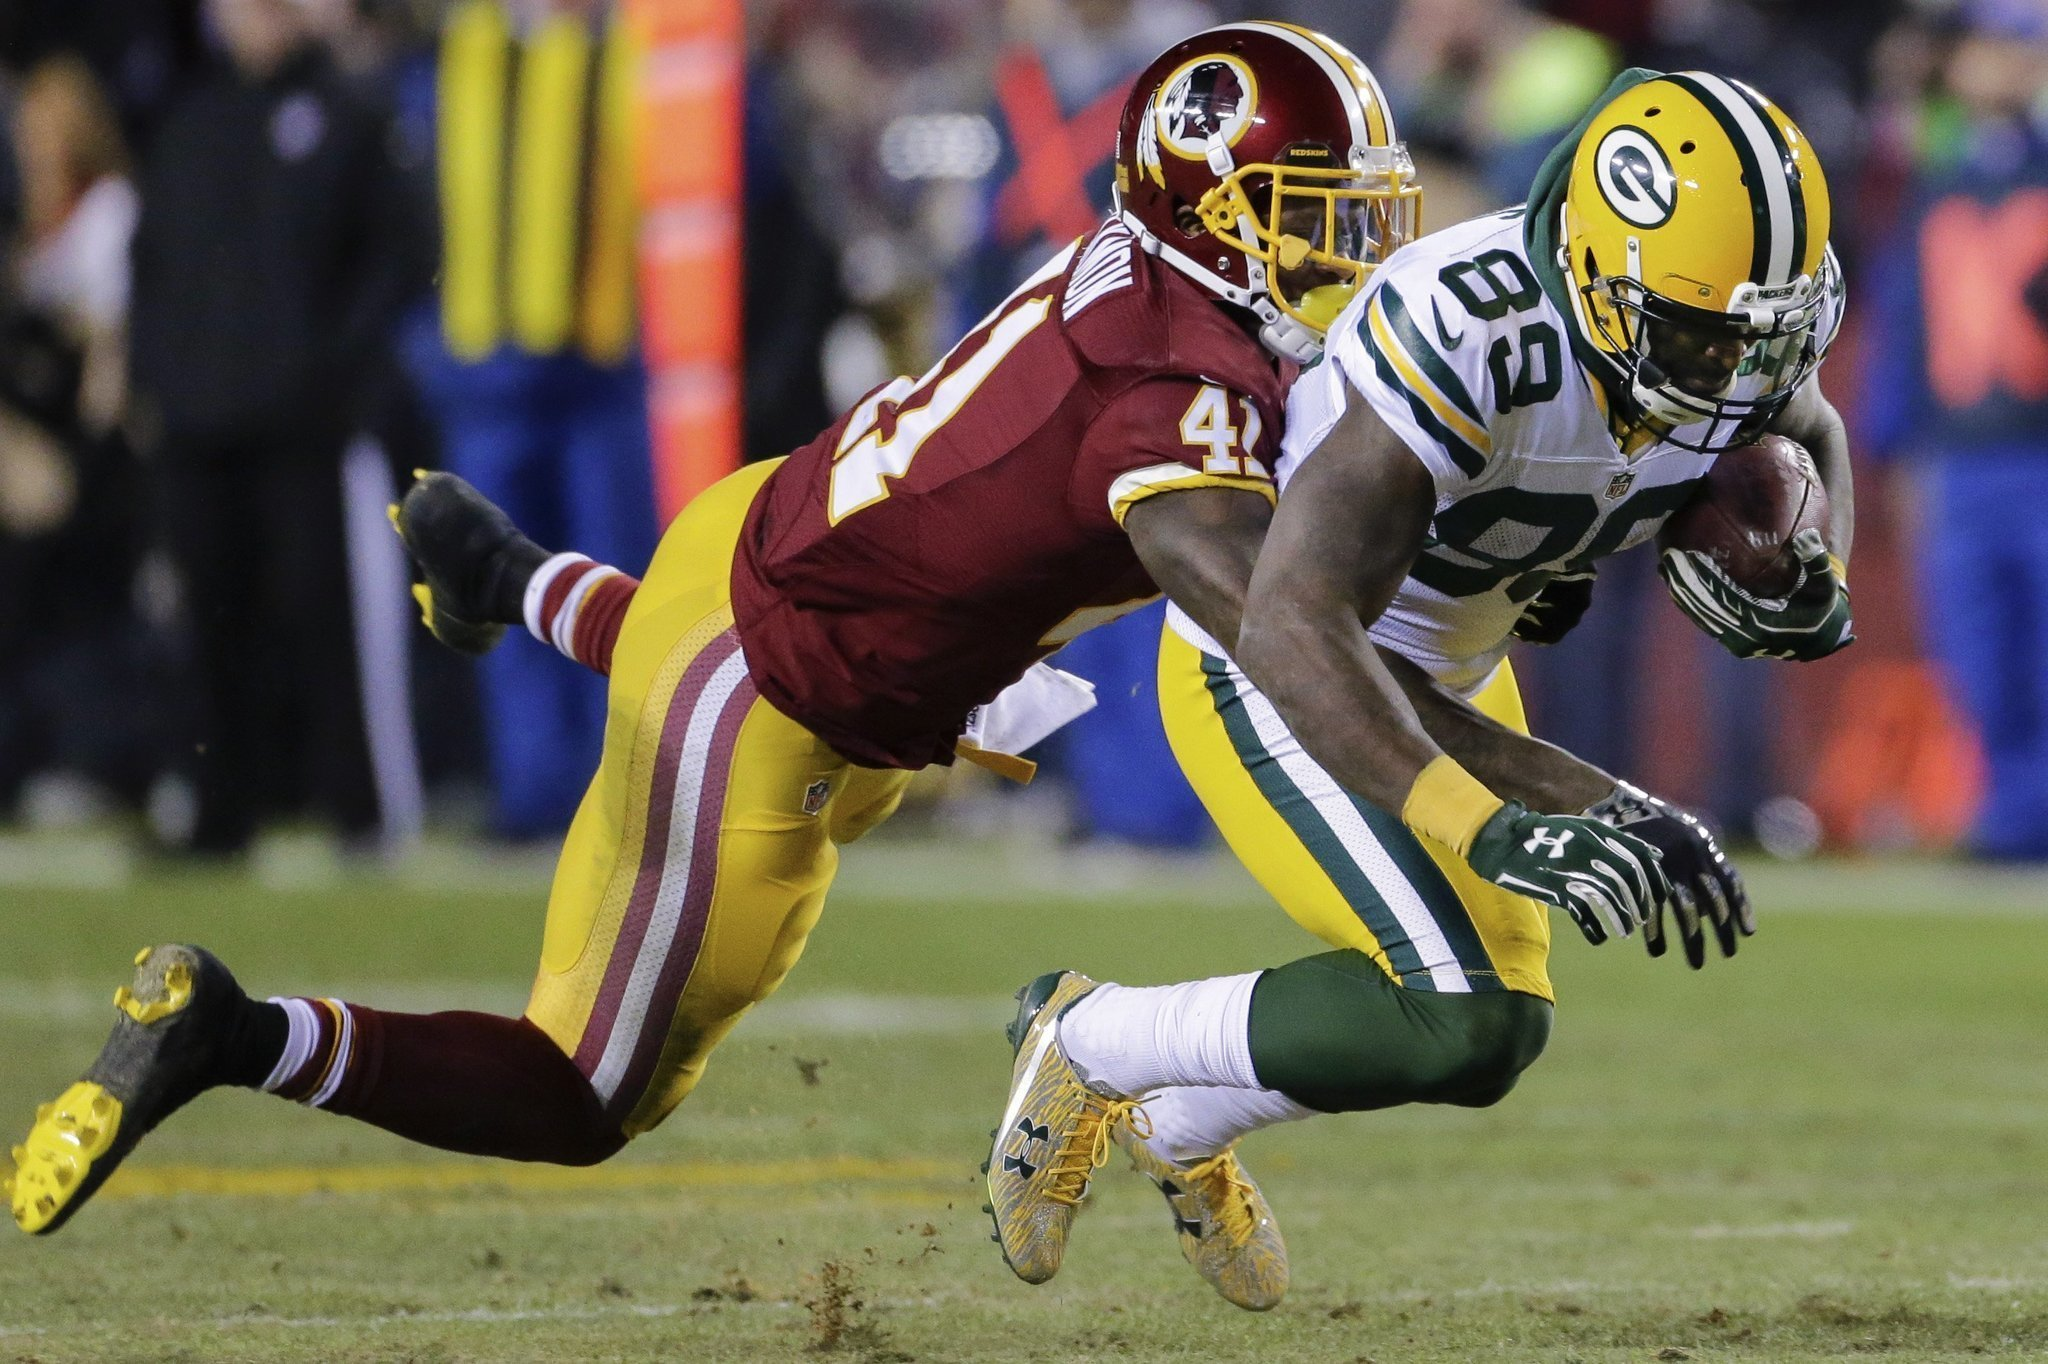 b21b84f70 Packers find playoff success in setting the tempo - The San Diego ...